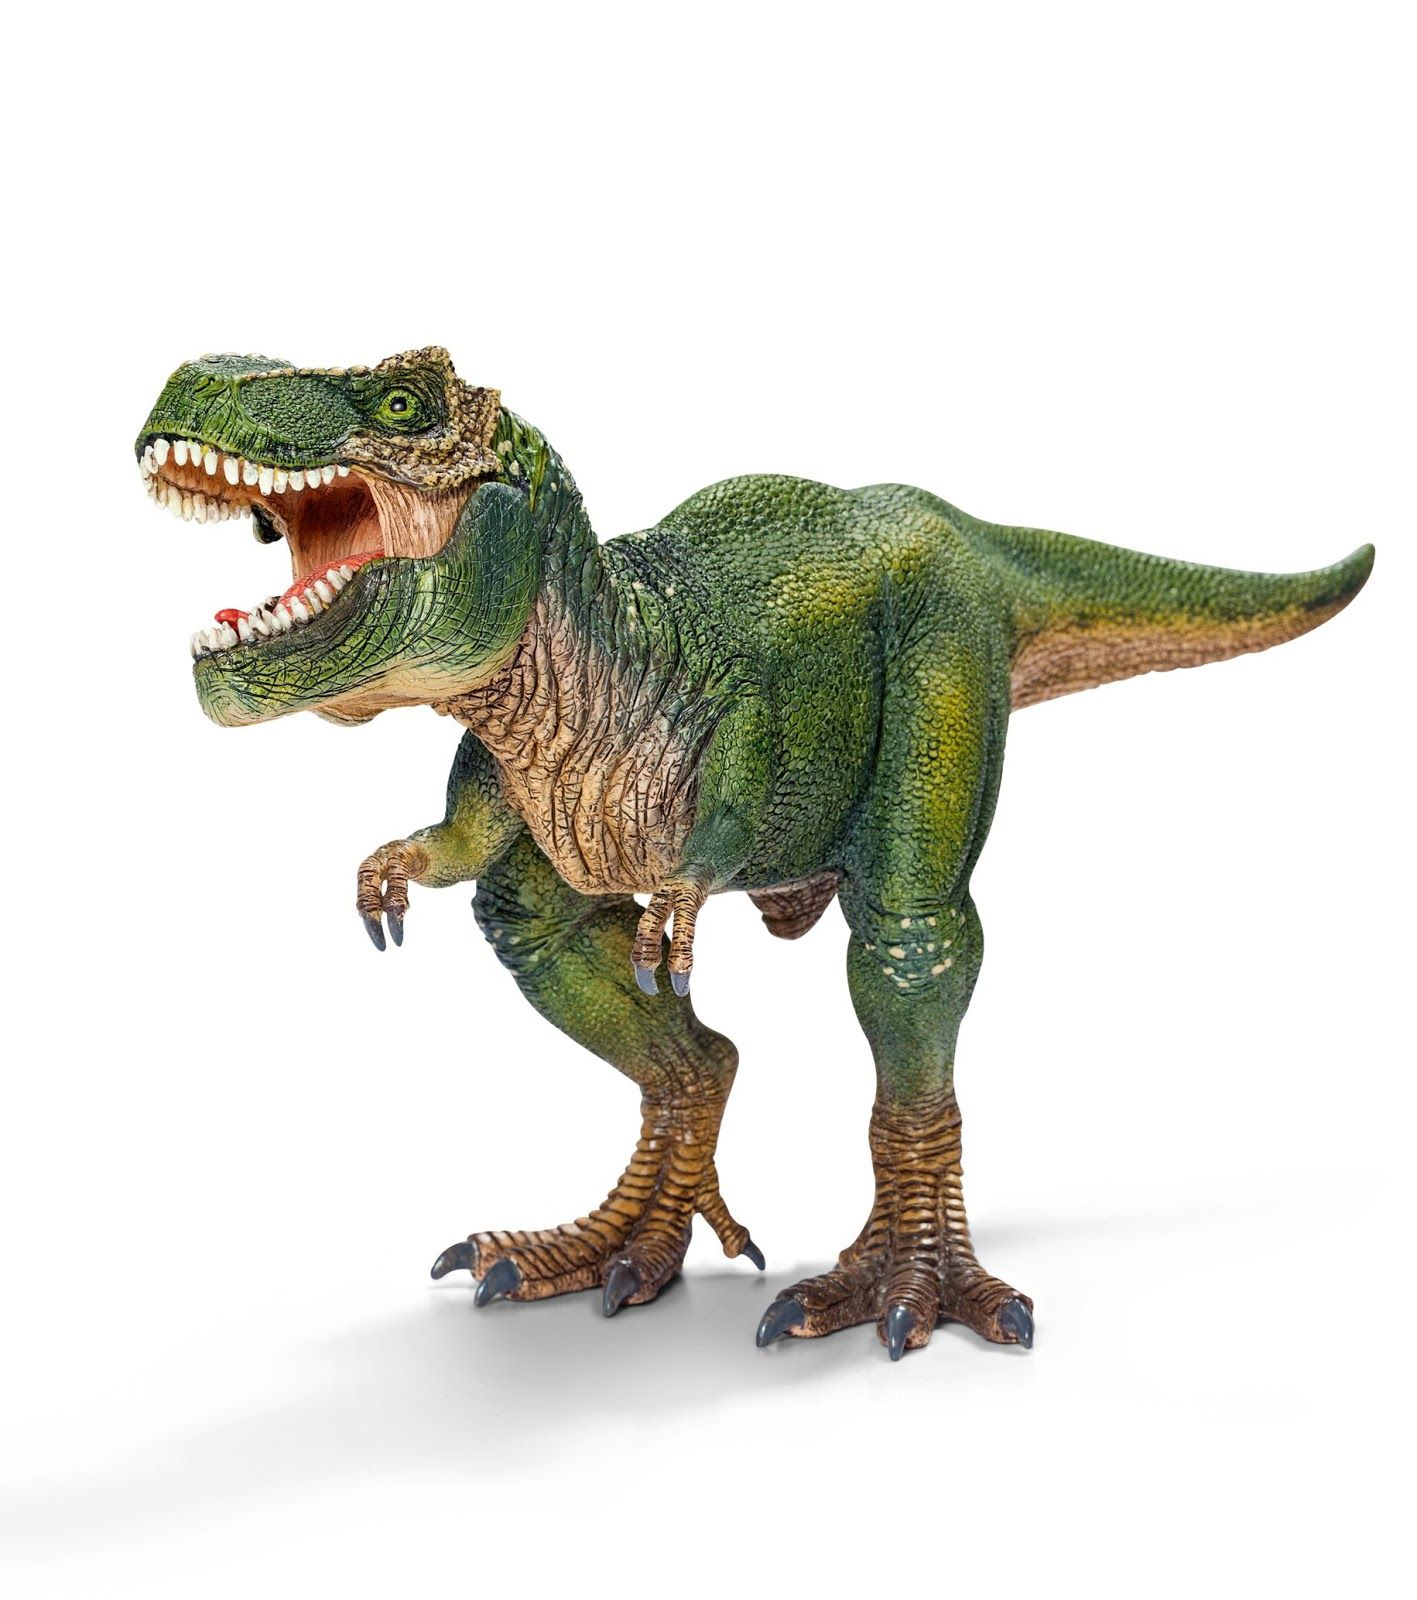 Jurassic Park Dinosaur Toys | ... : 12 Days of Christmas Toys - On the seventh day of Christmas